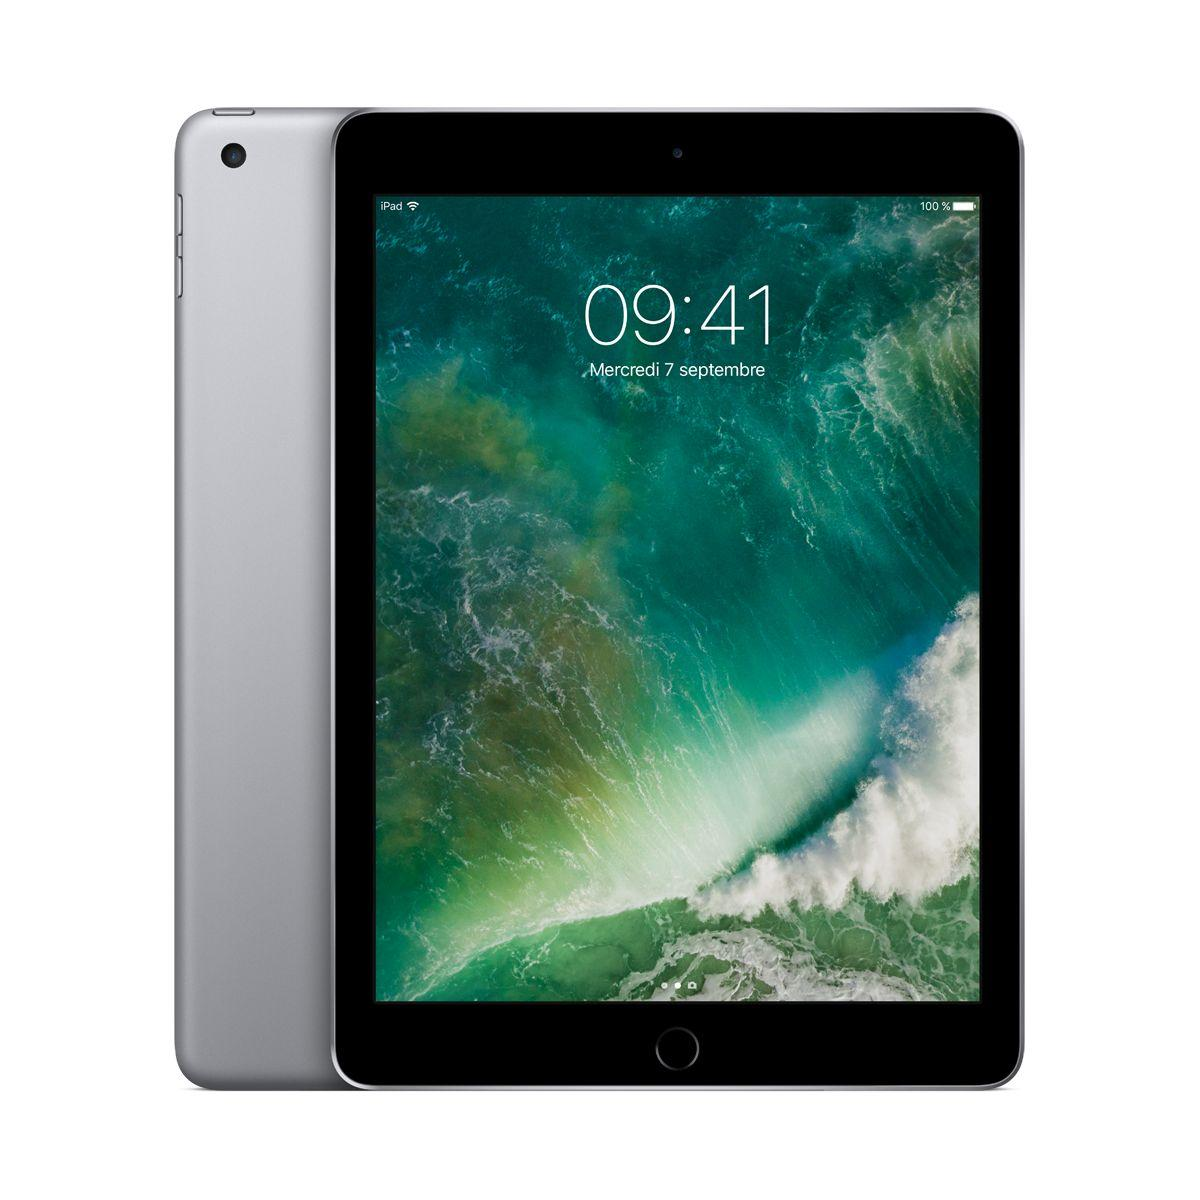 Tablette ipad new ipad 128go gris sid. (photo)